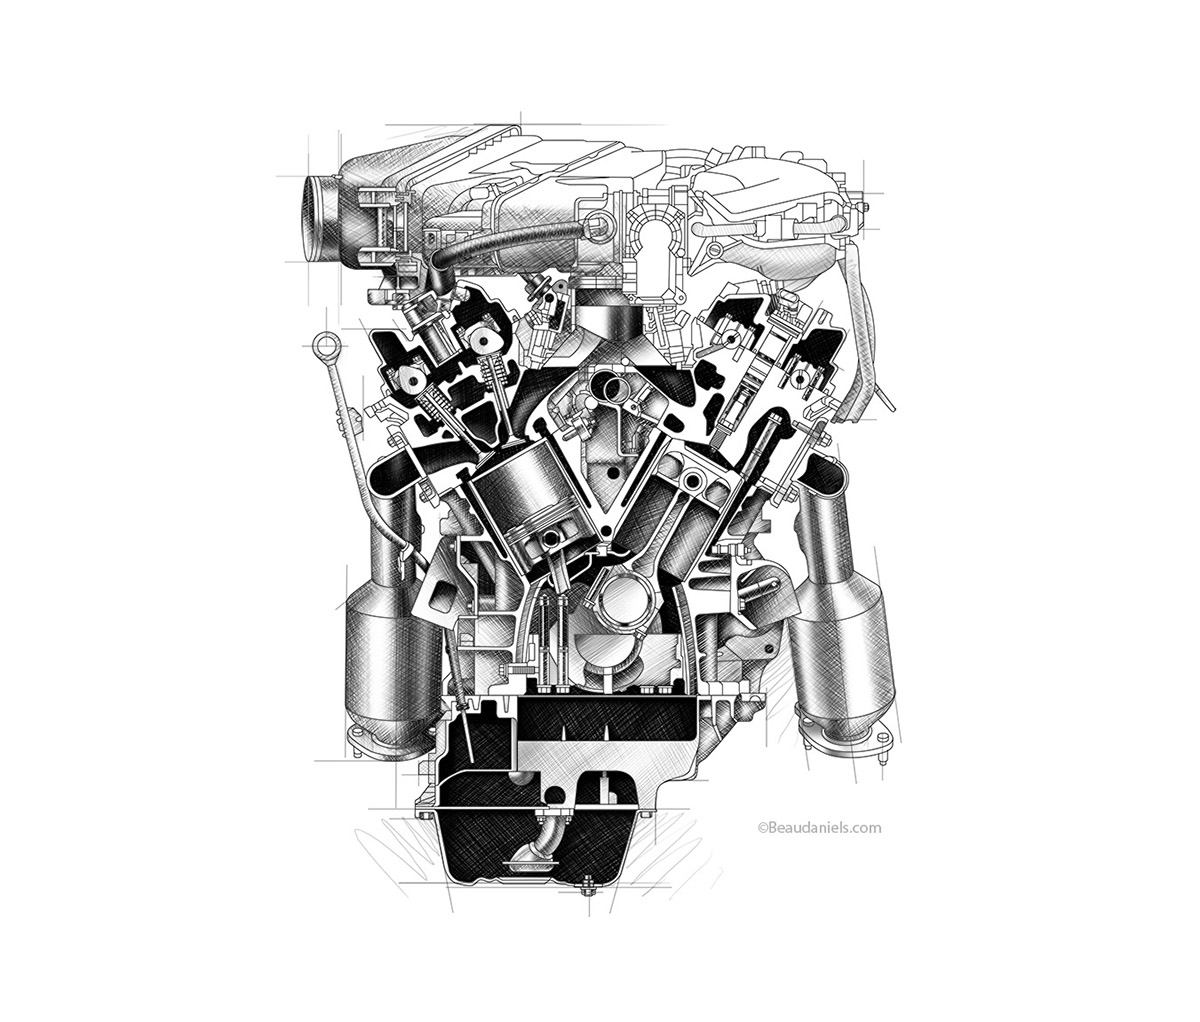 Generic car engines. portfolio 1 on Behance